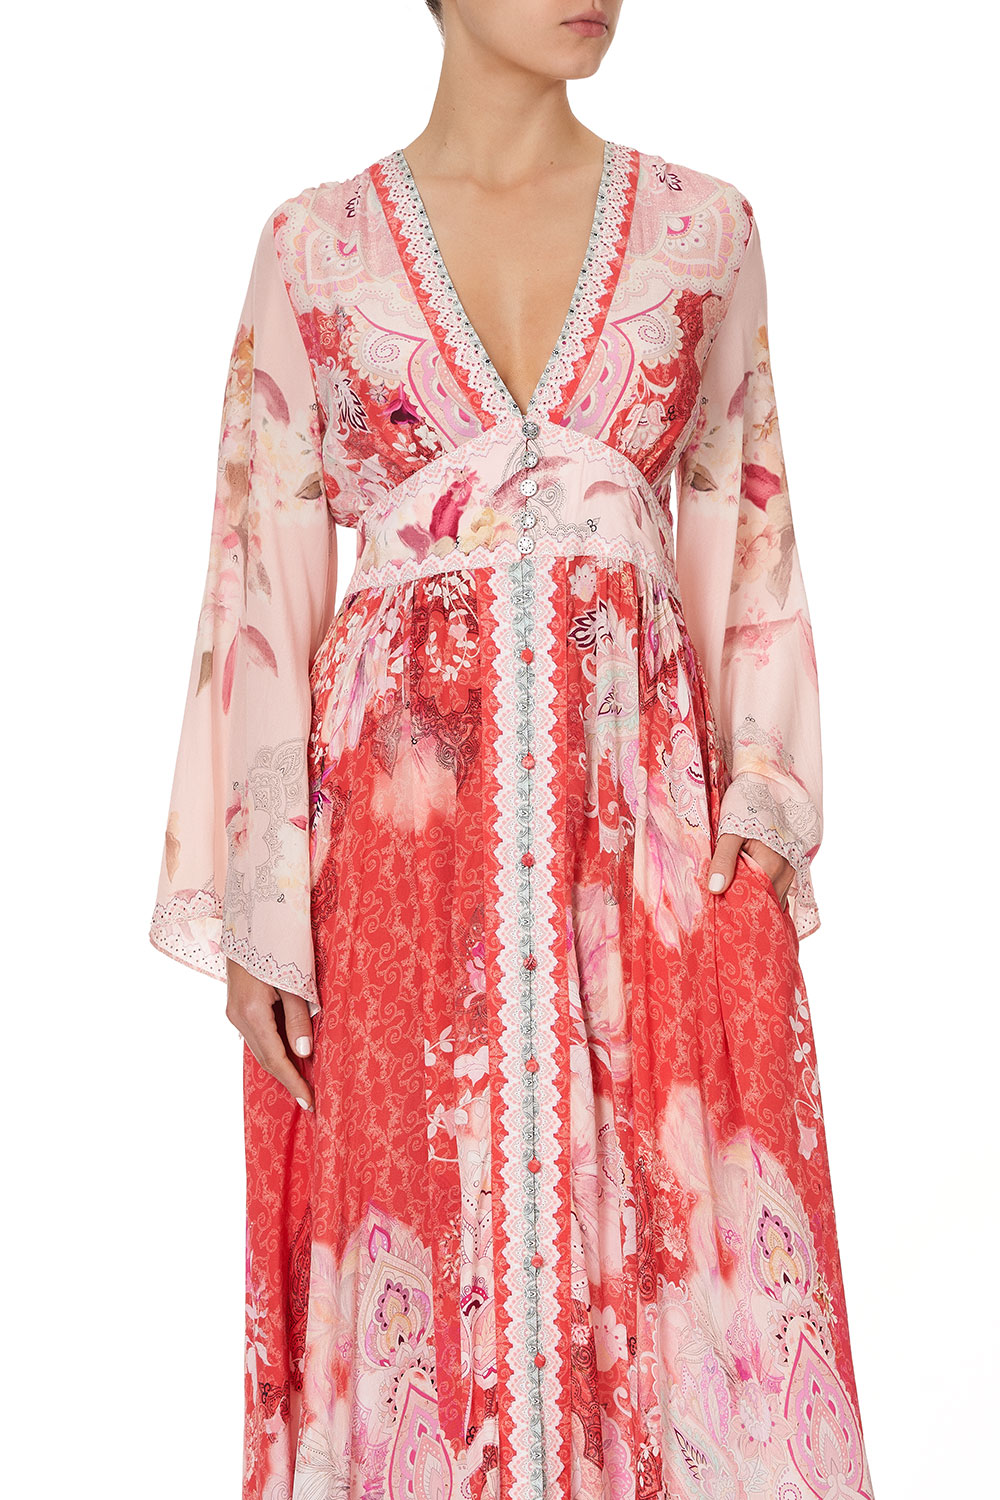 camilla_kimono_sleeve_dress_with_shirring_detail_palace_muse_7